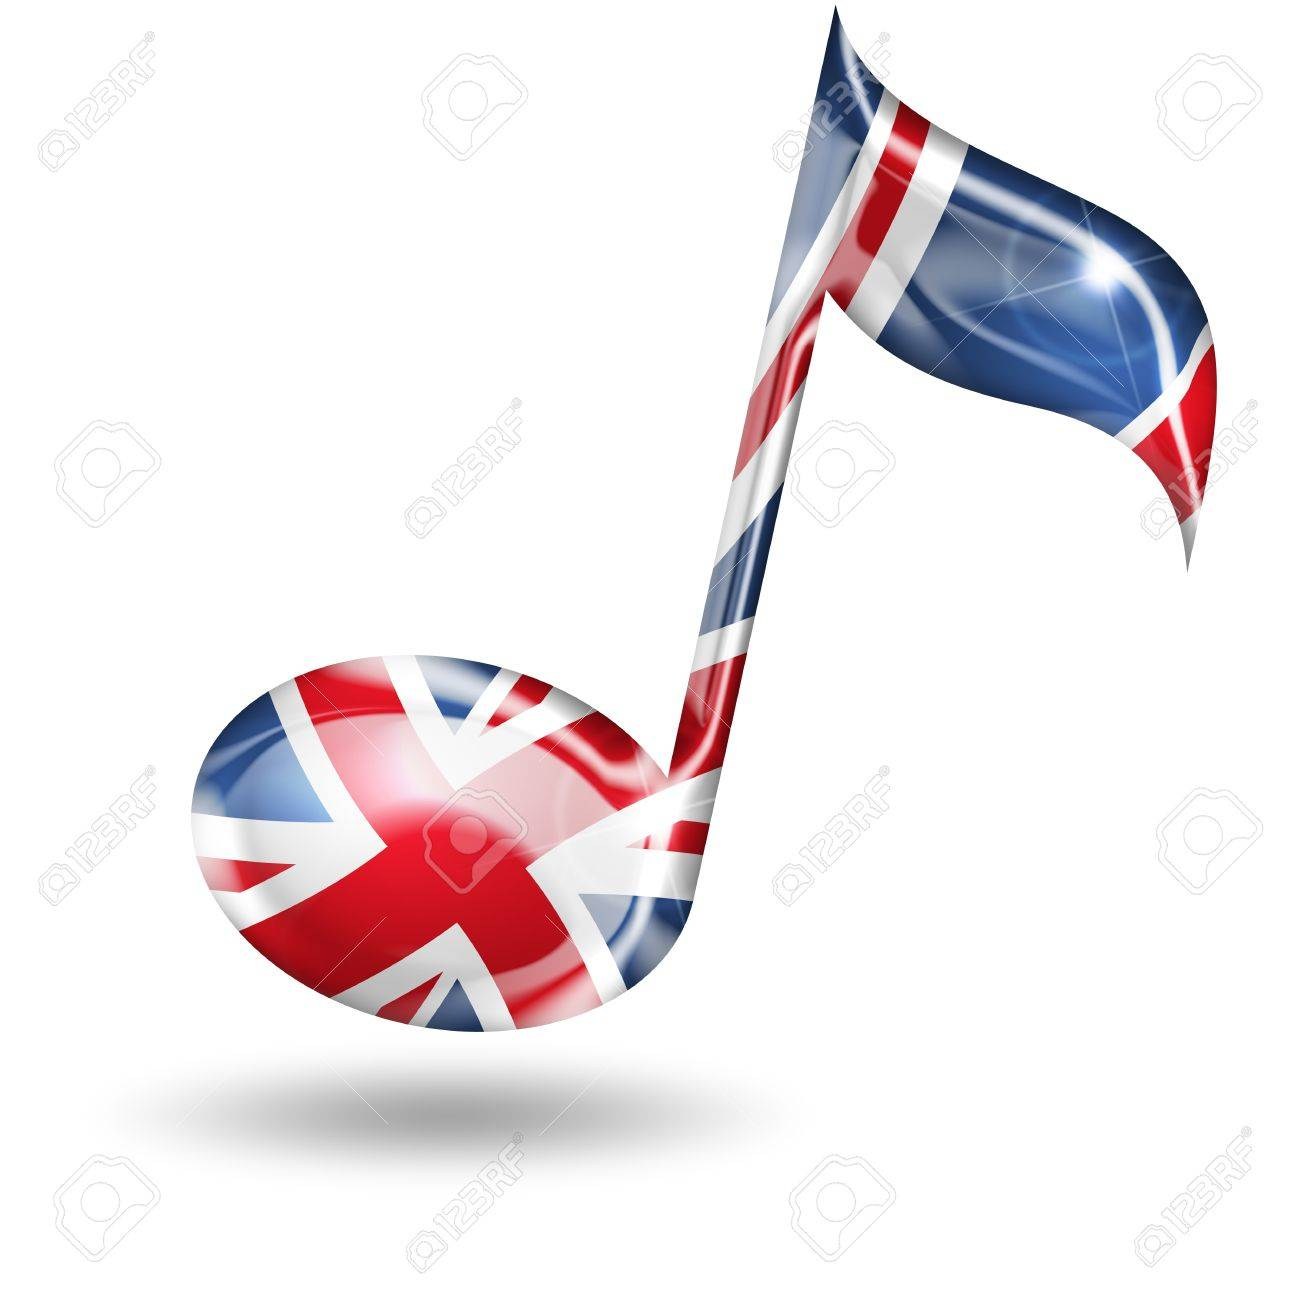 musical note with english flag colors on white background Stock Photo - 18989415